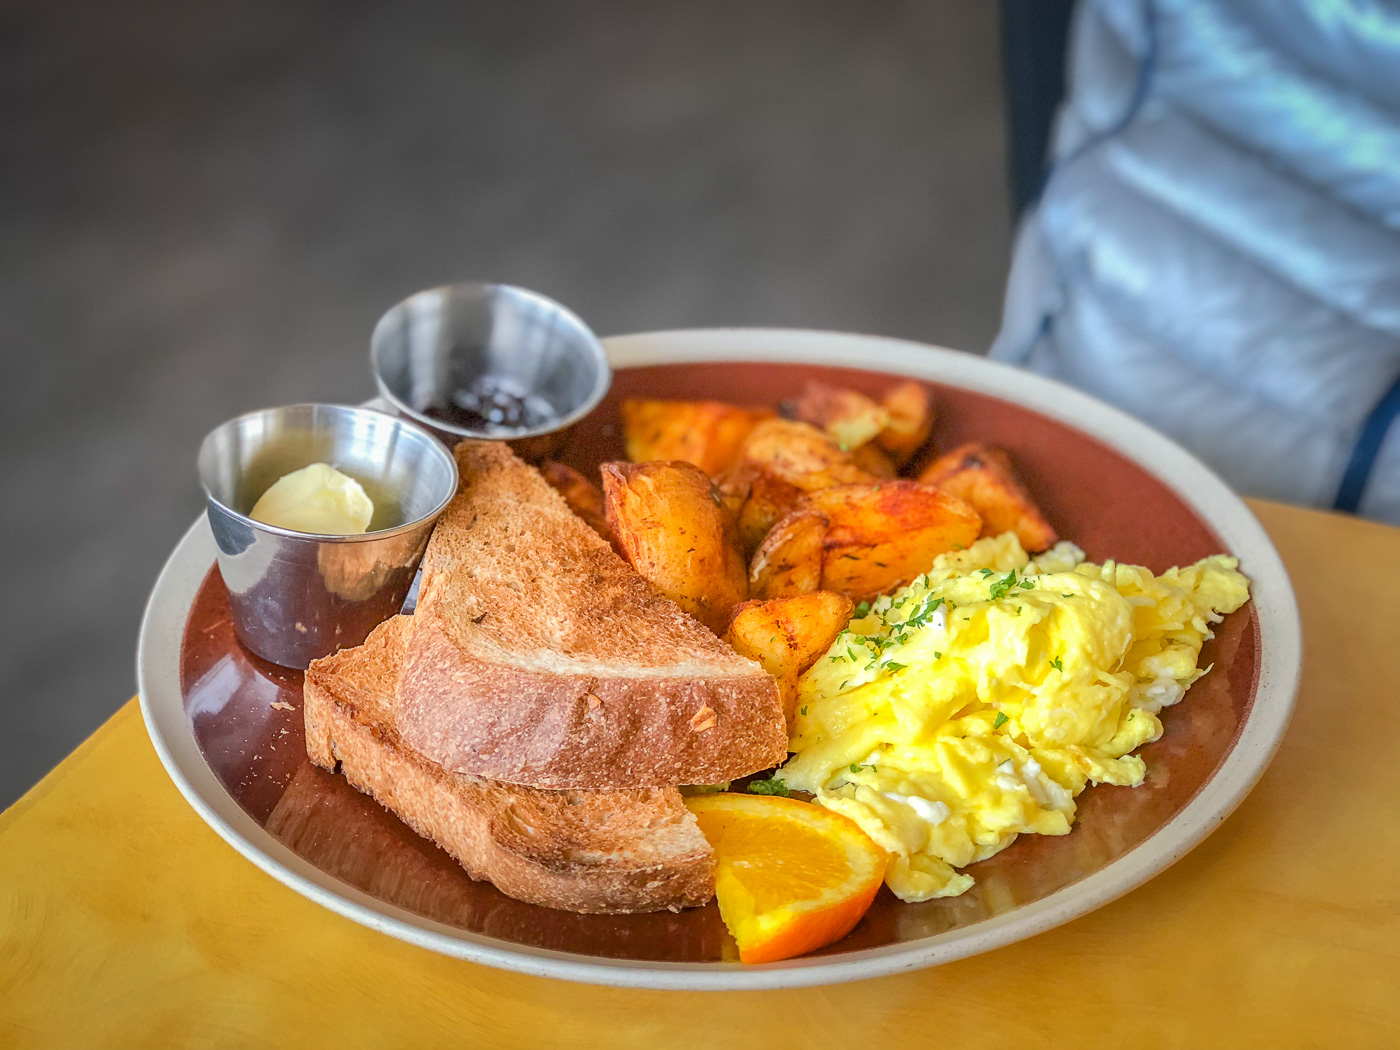 Brown plate with scrambled eggs, whole wheat toast, and roasted potatoes